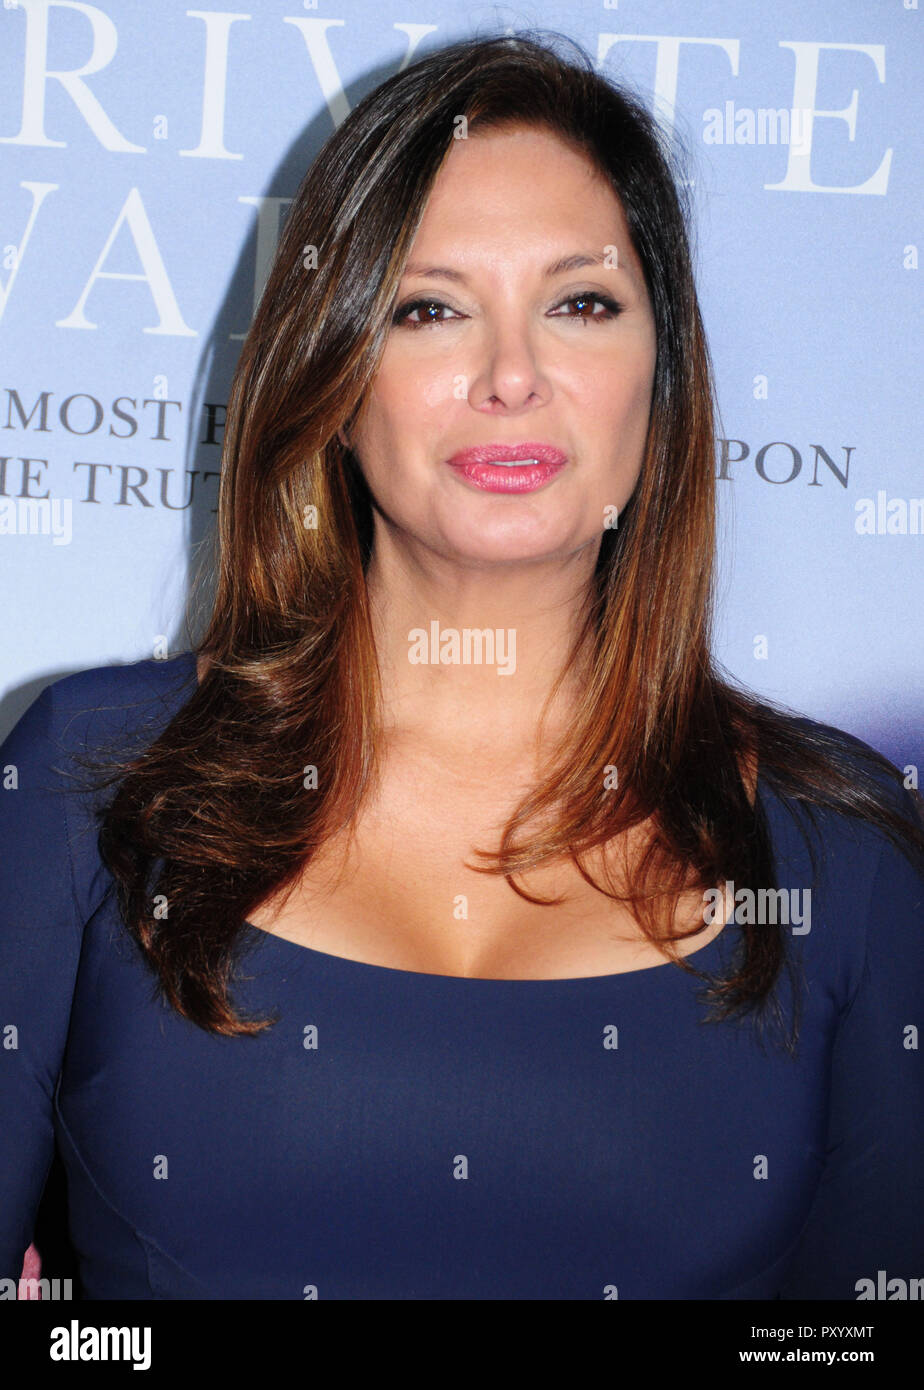 Beverly Hills, California, USA. 24th October, 2018. Actress Alex Meneses attends the Los Angeles Premiere of Aviron Pictures' 'A Private War' at Samuel Goldwyn Theater in Beverly Hills, California. Photo by Barry King/Alamy Live News - Stock Image